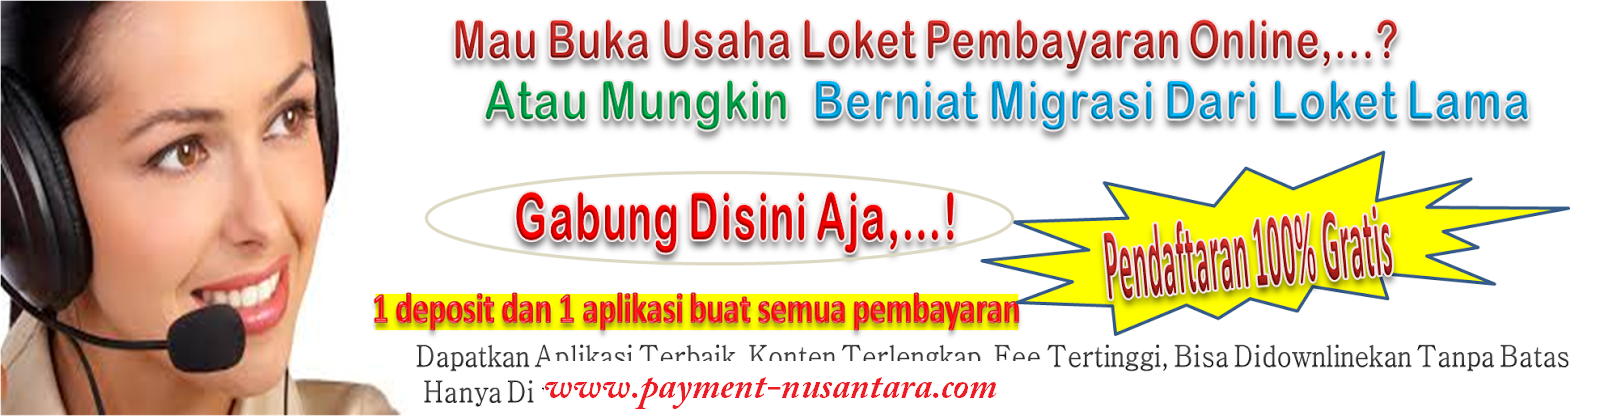 Image Result For Cv Mpn Multi Payment Nusantara